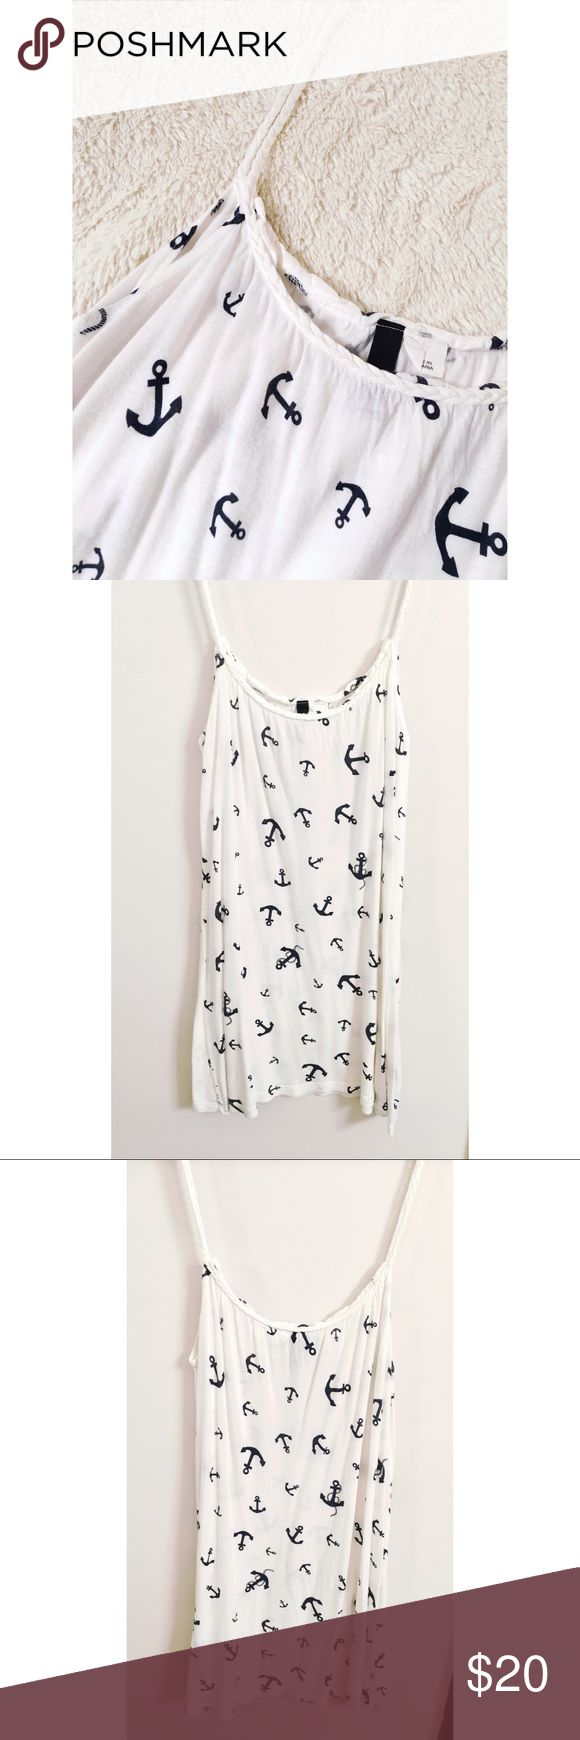 H&M • anchor tank H&M anchor tank top with braided straps. Size 4. can be worn as a tank or a beach coverup! About 27in long.  Super cute and loose fitting, perfect condition! H&M Tops Tank Tops